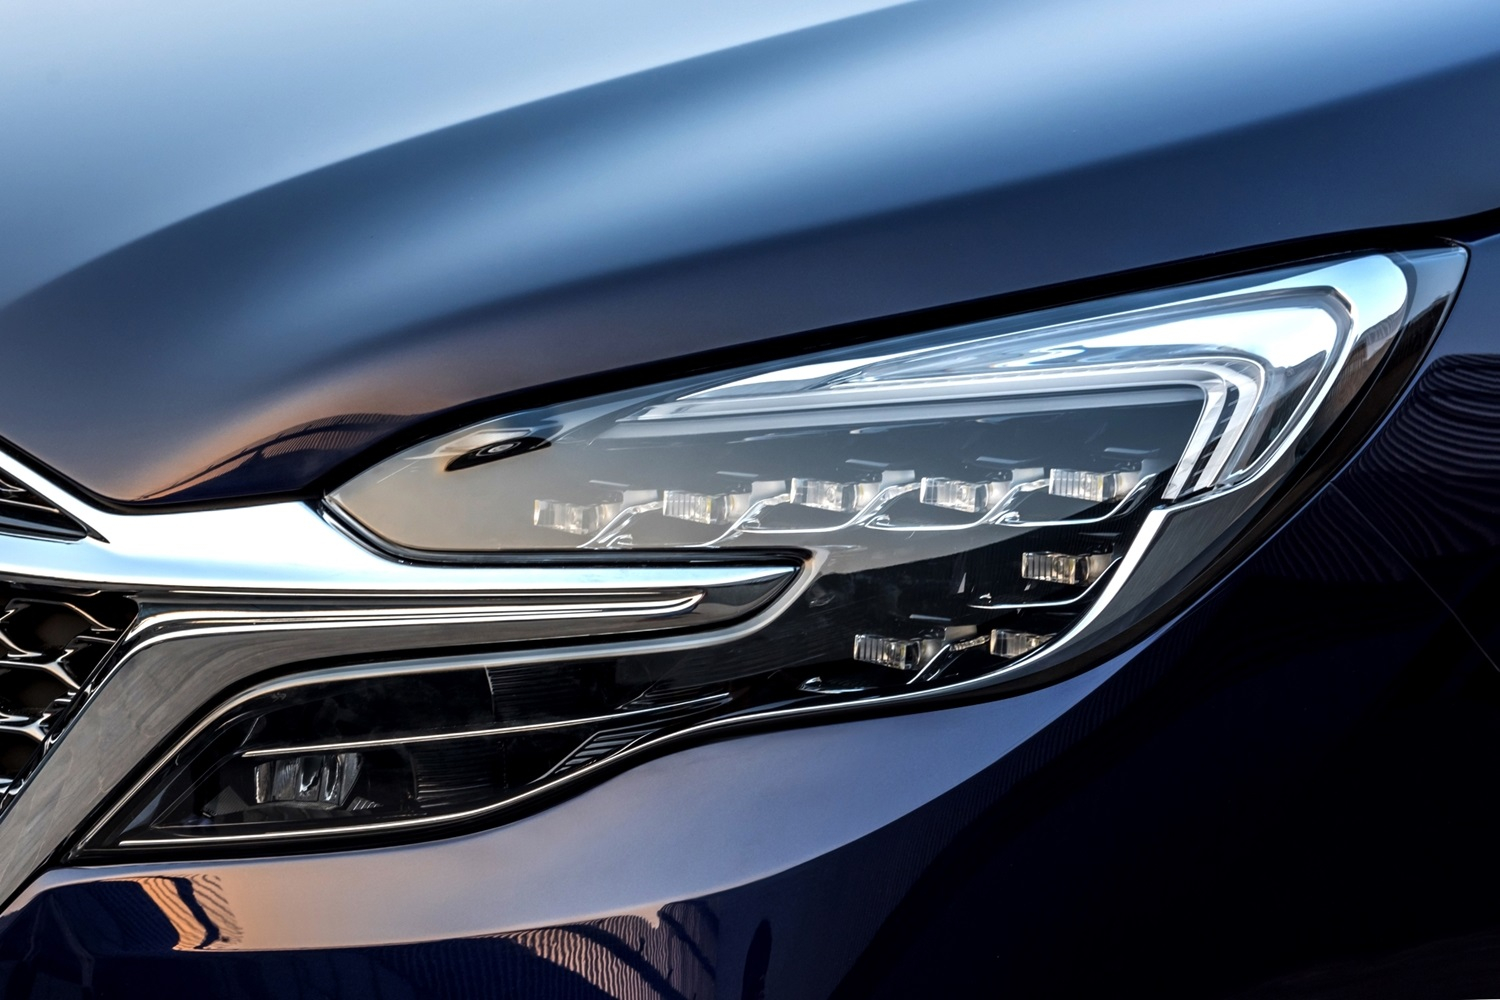 Upcoming 2020 Buick Gl8 Mpv Refresh Leaked   Gm Authority 2022 Buick Riviera Interior, Concept, Headlights